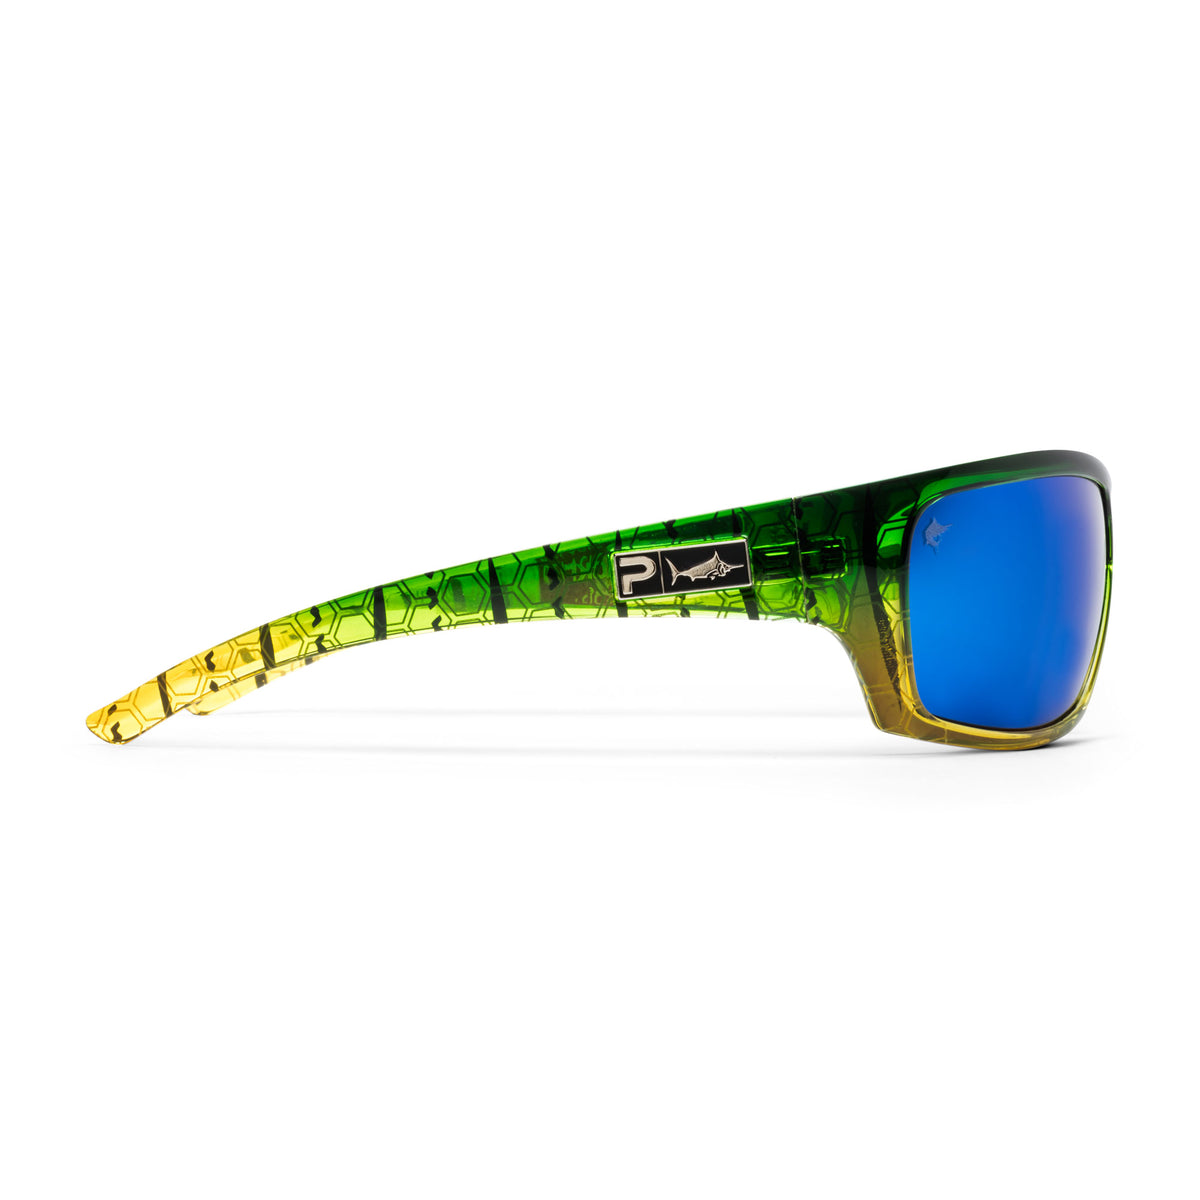 The Mack - Polarized Mineral Glass™ Big Image - 3